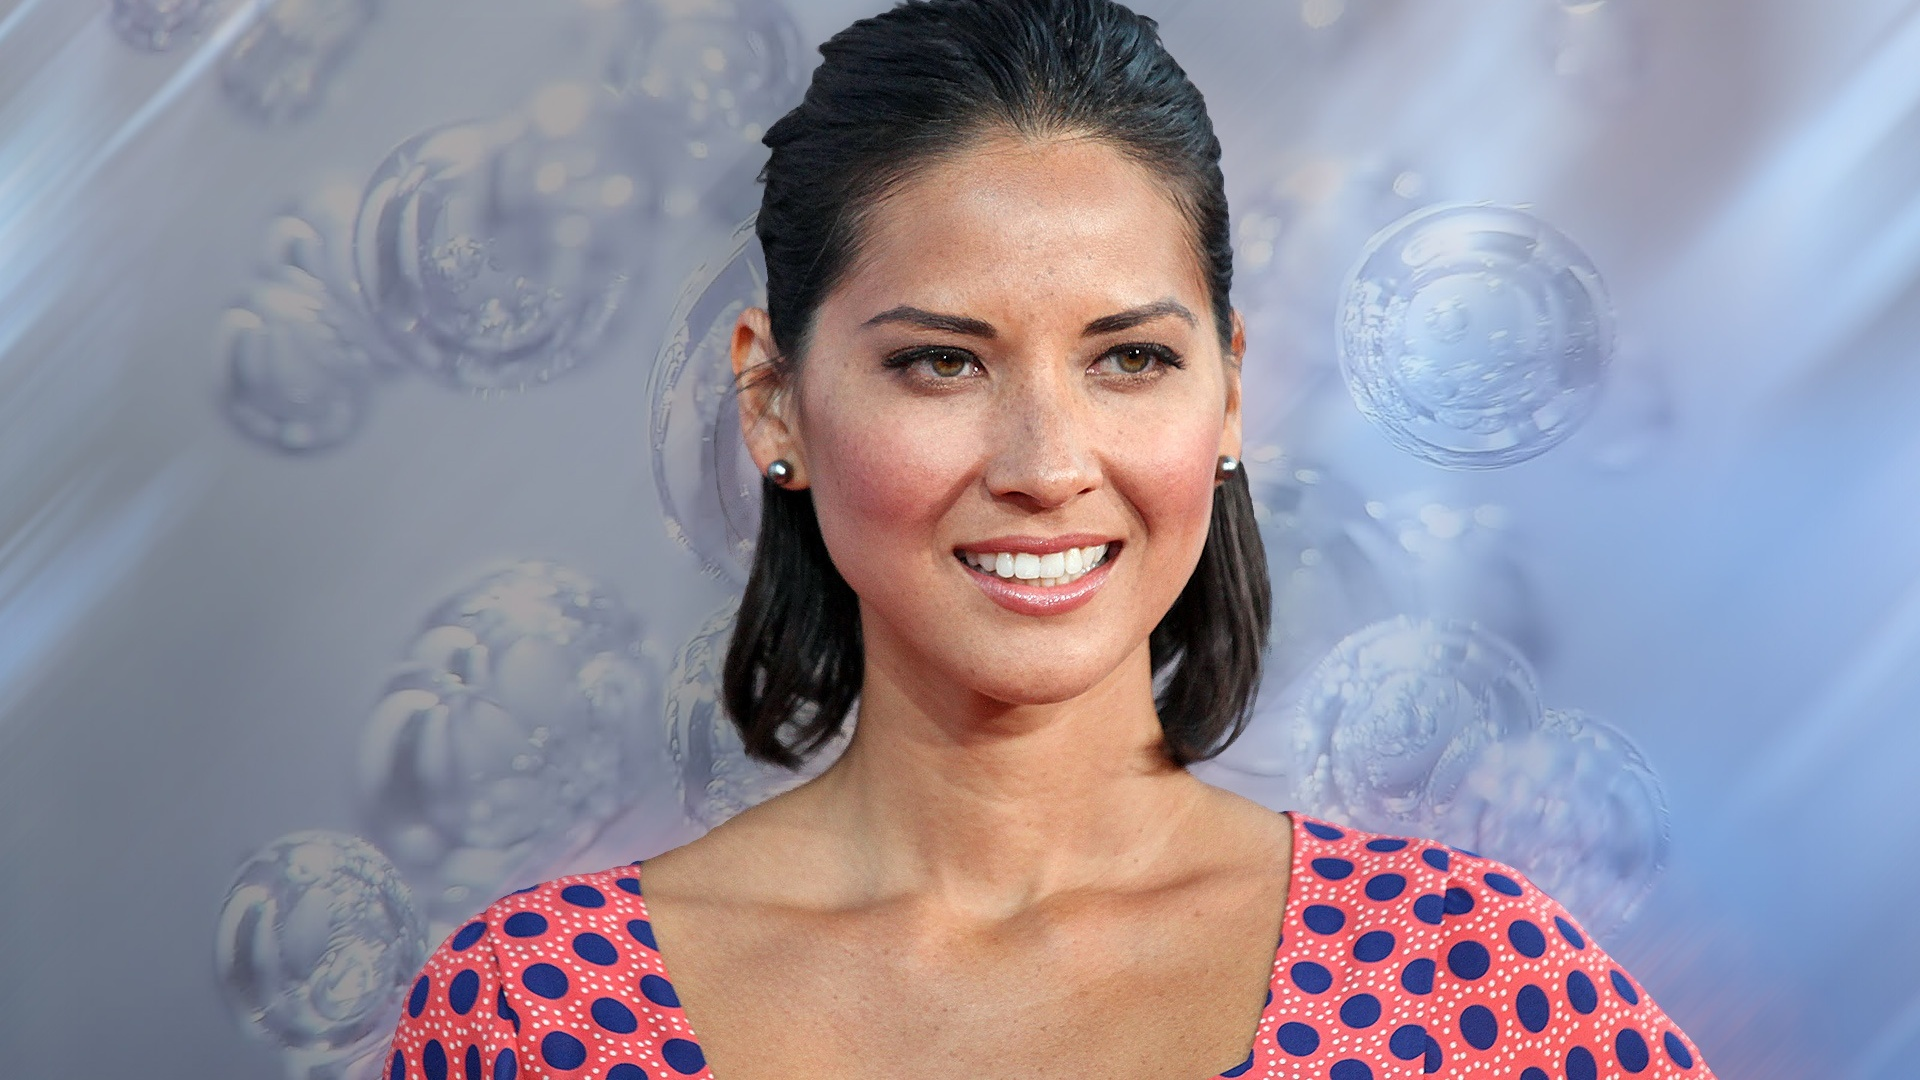 olivia munn30 1920x1080 wallpapers - photo #19